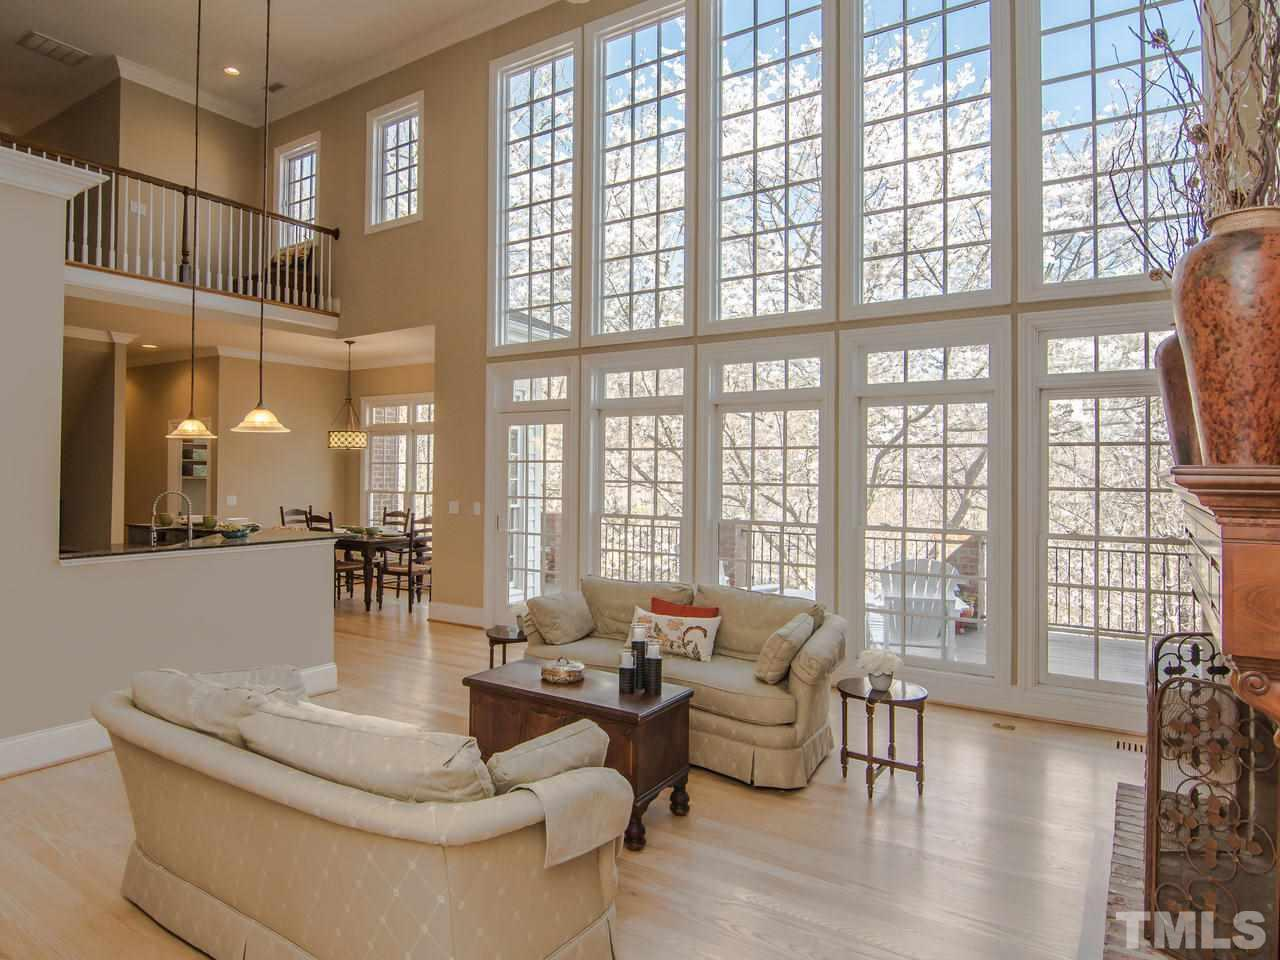 Great room with floor to ceiling windows that over look the backyard.